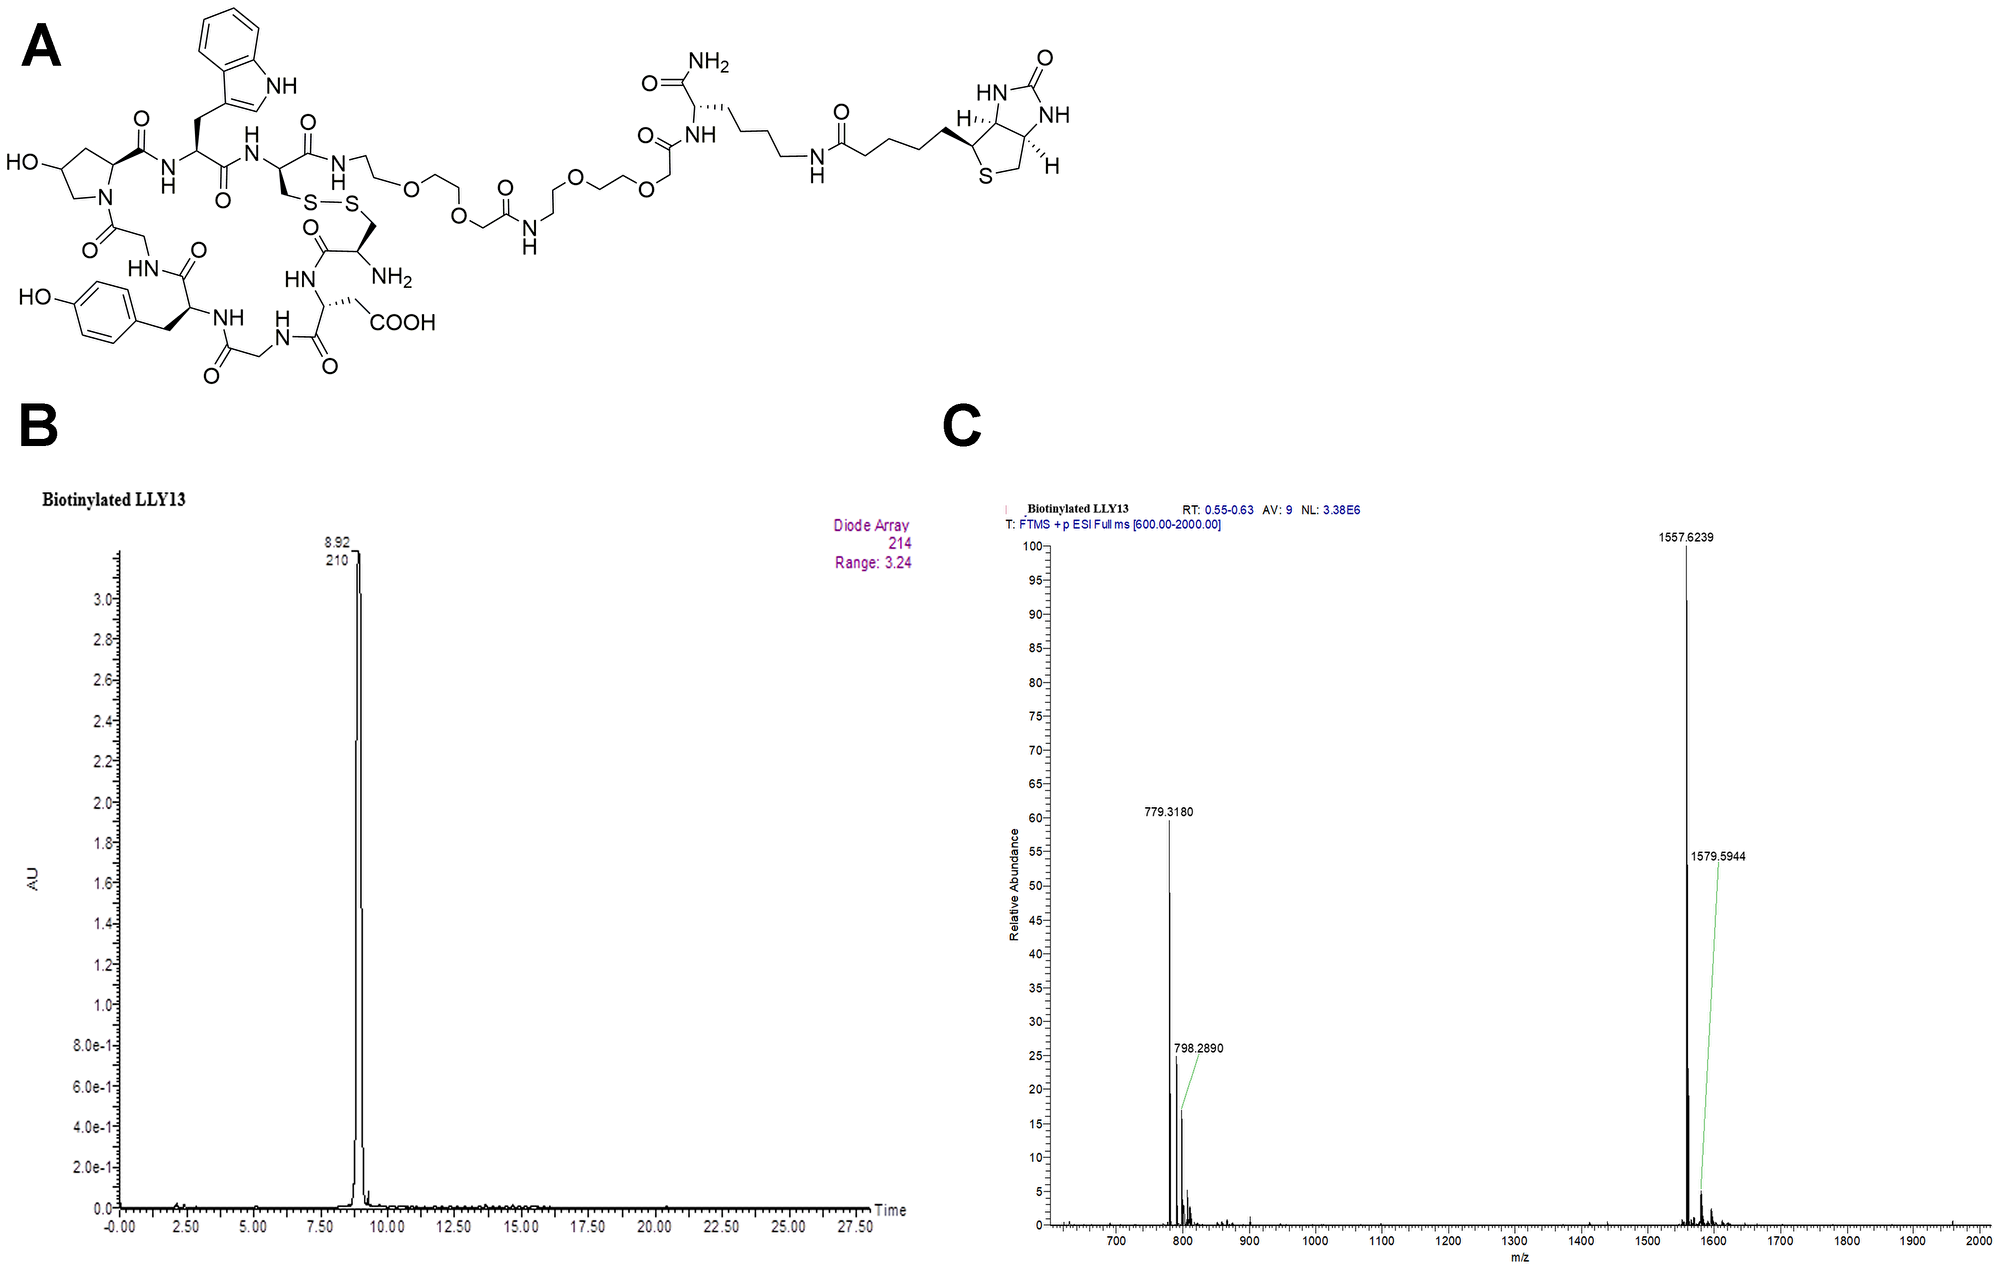 Structure and characterization of biotinylated LLY13.